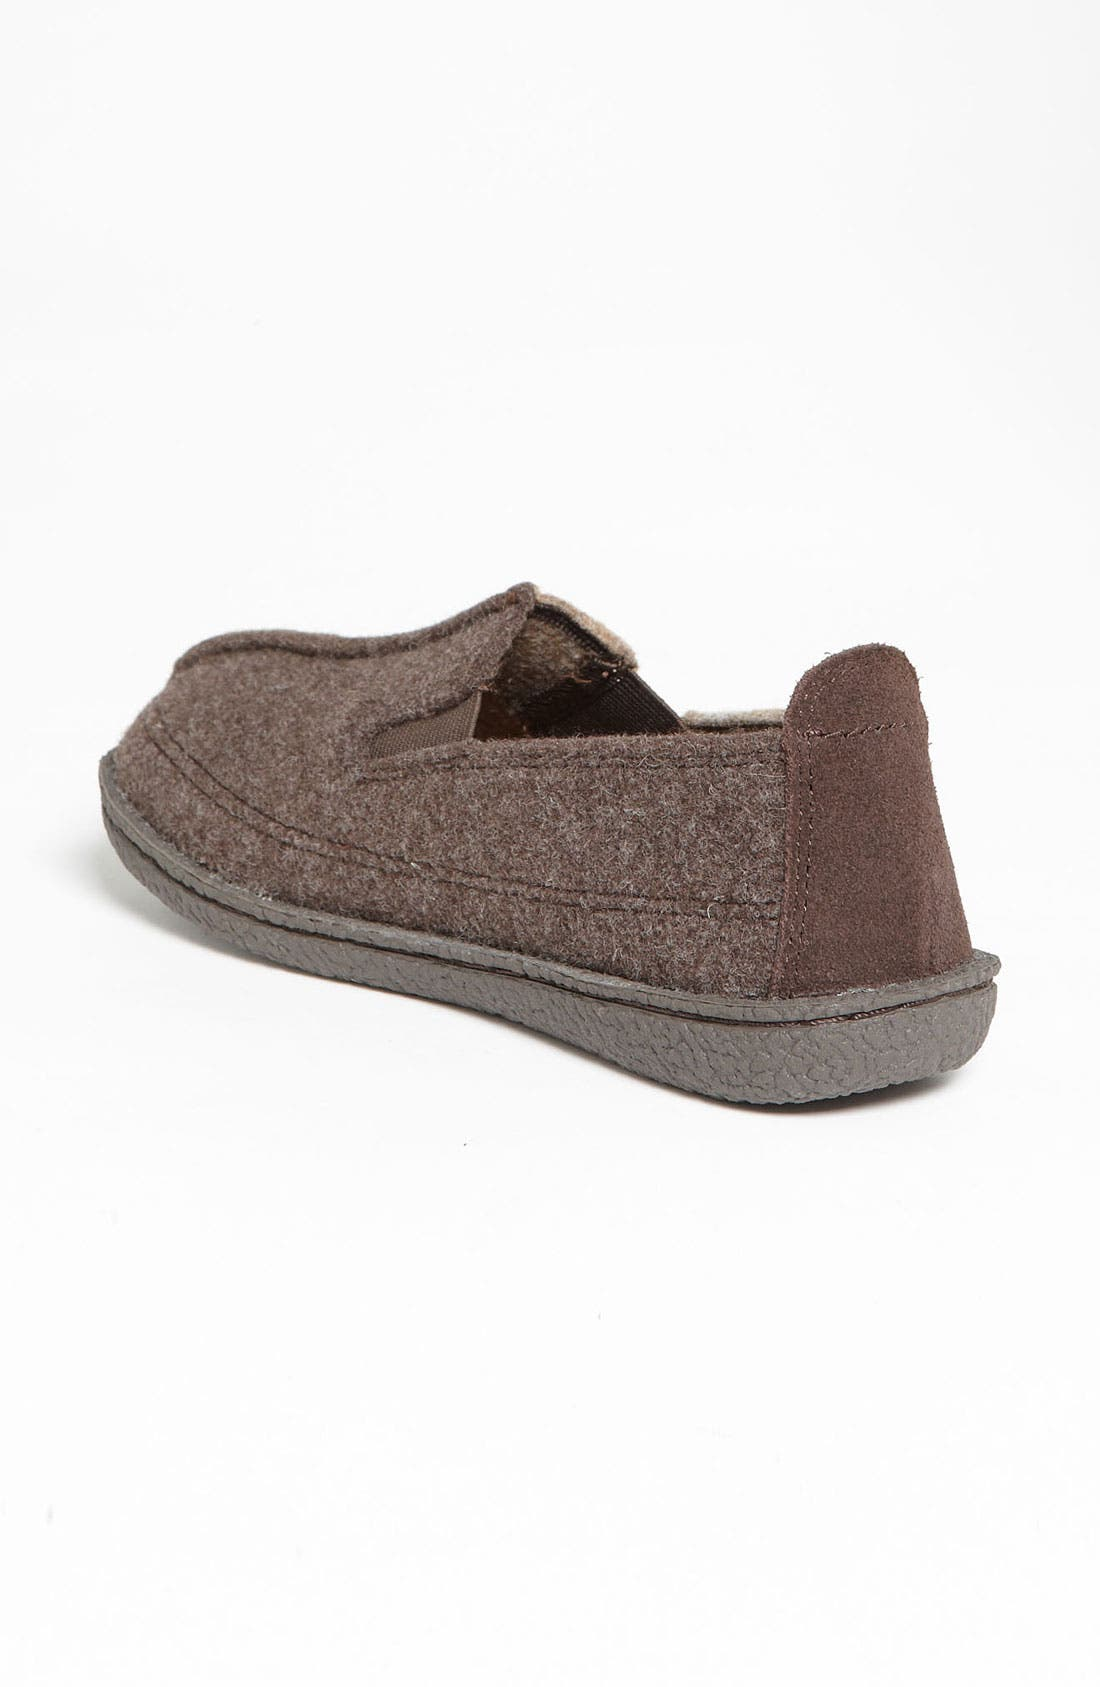 Alternate Image 2  - Woolrich 'Plumtree' Slipper